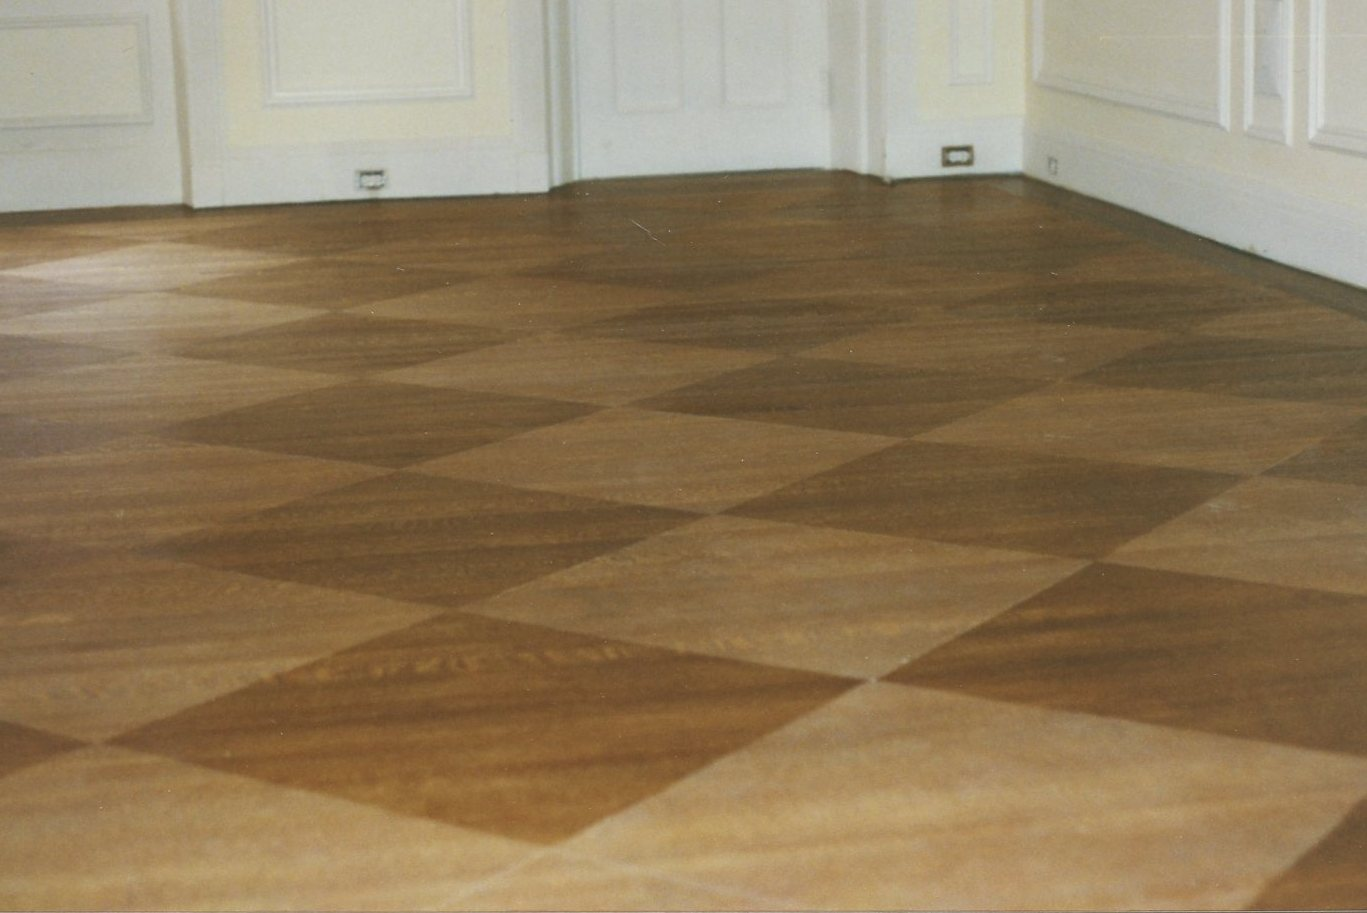 Oak wood floors duffyfloors for Hard floor tiles